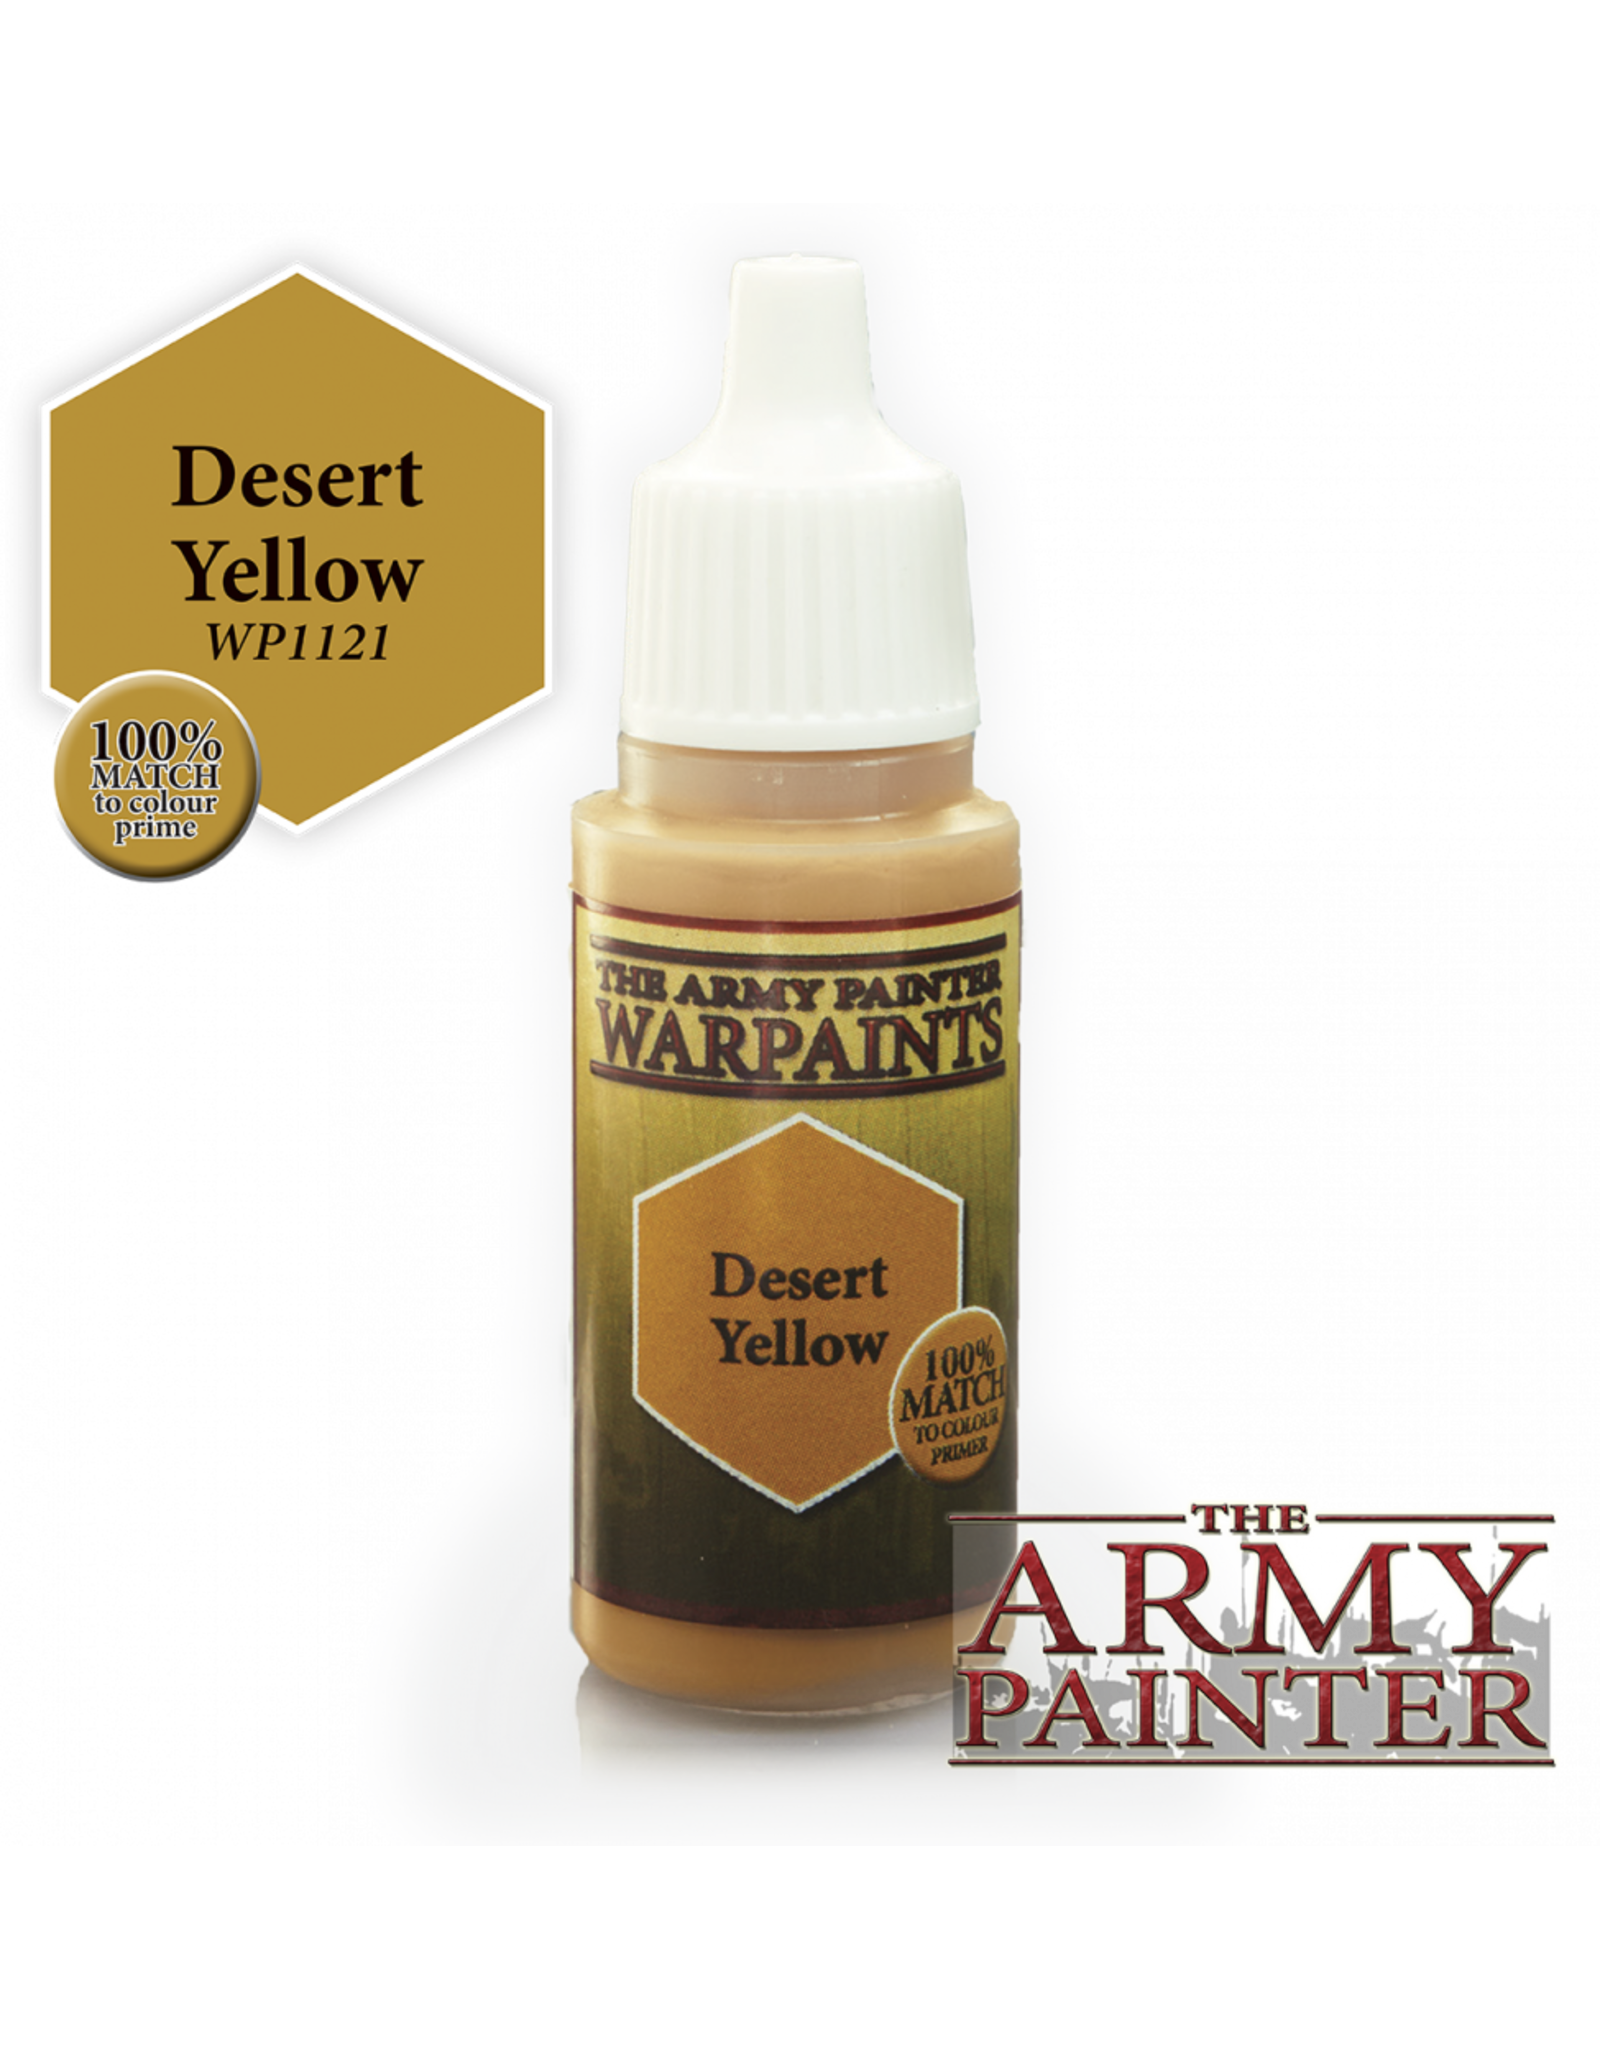 THE ARMY PAINTER ARMY PAINTER WARPAINTS DESERT YELLOW